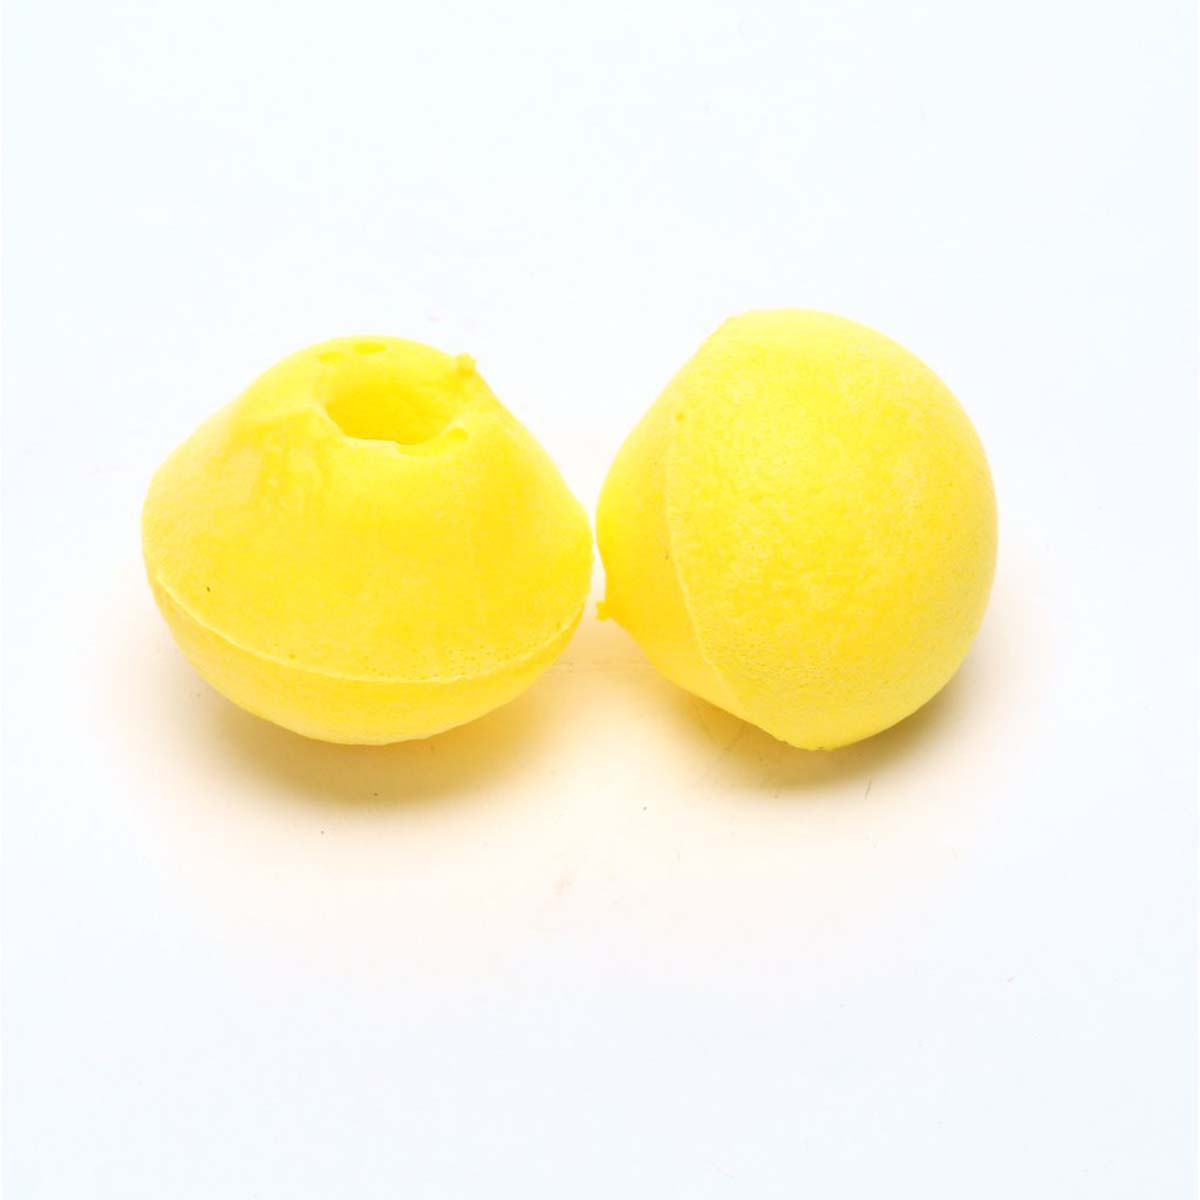 3M E-A-R Caps Model 200 Hearing Protector Replacement Pods 321-2103